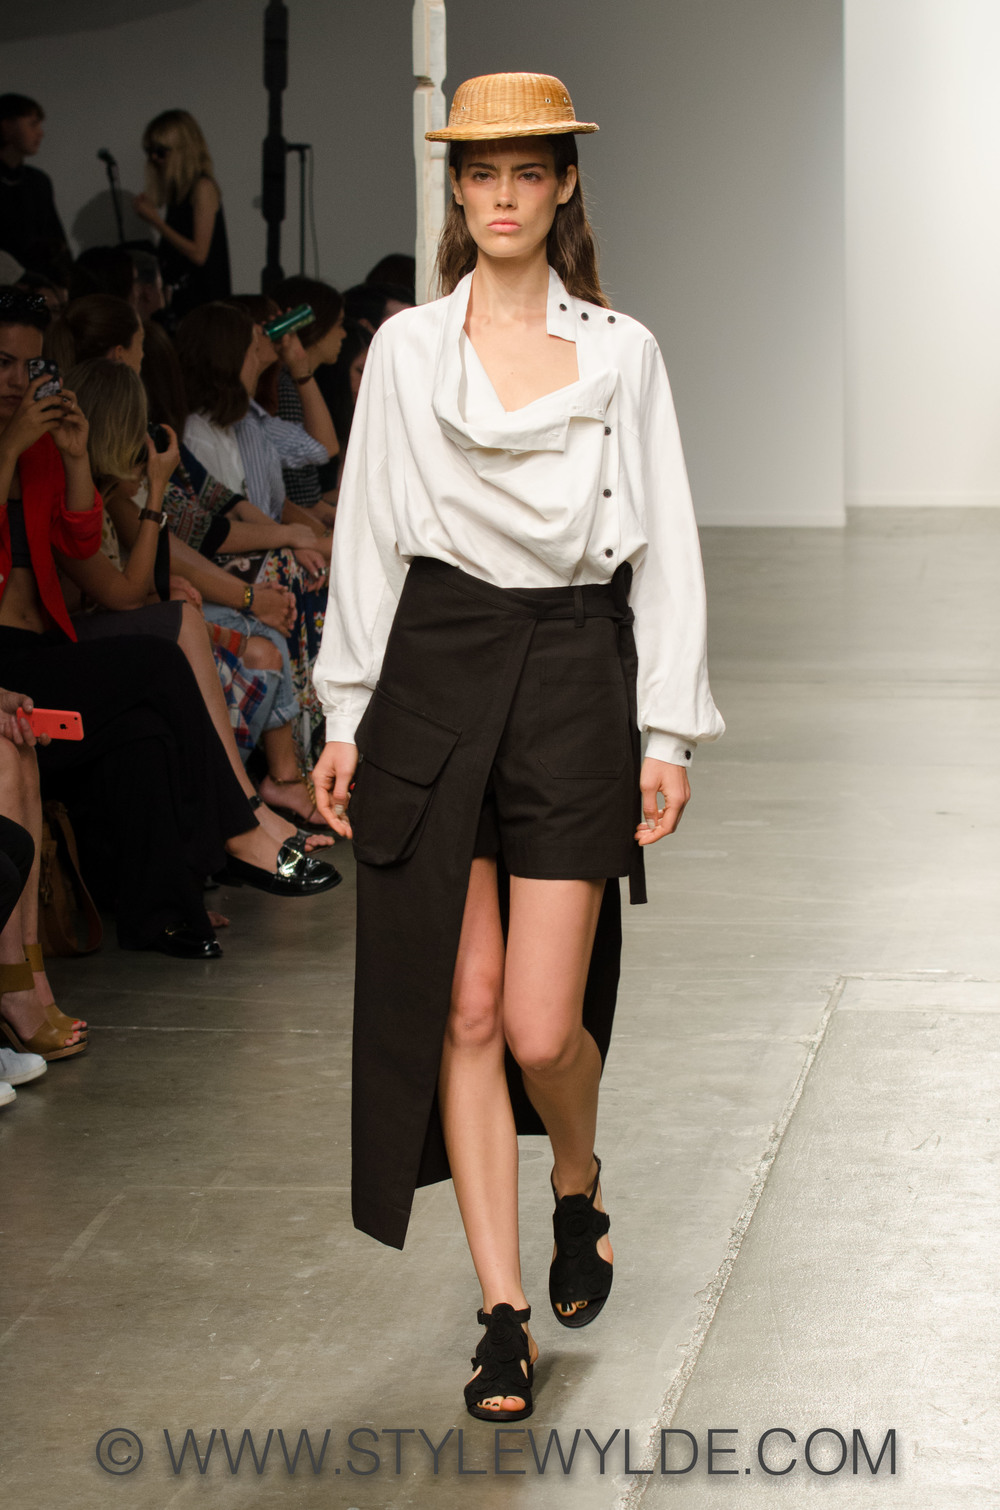 StyleWylde_Creatures_FOH_SS15 (48 of 49).jpg